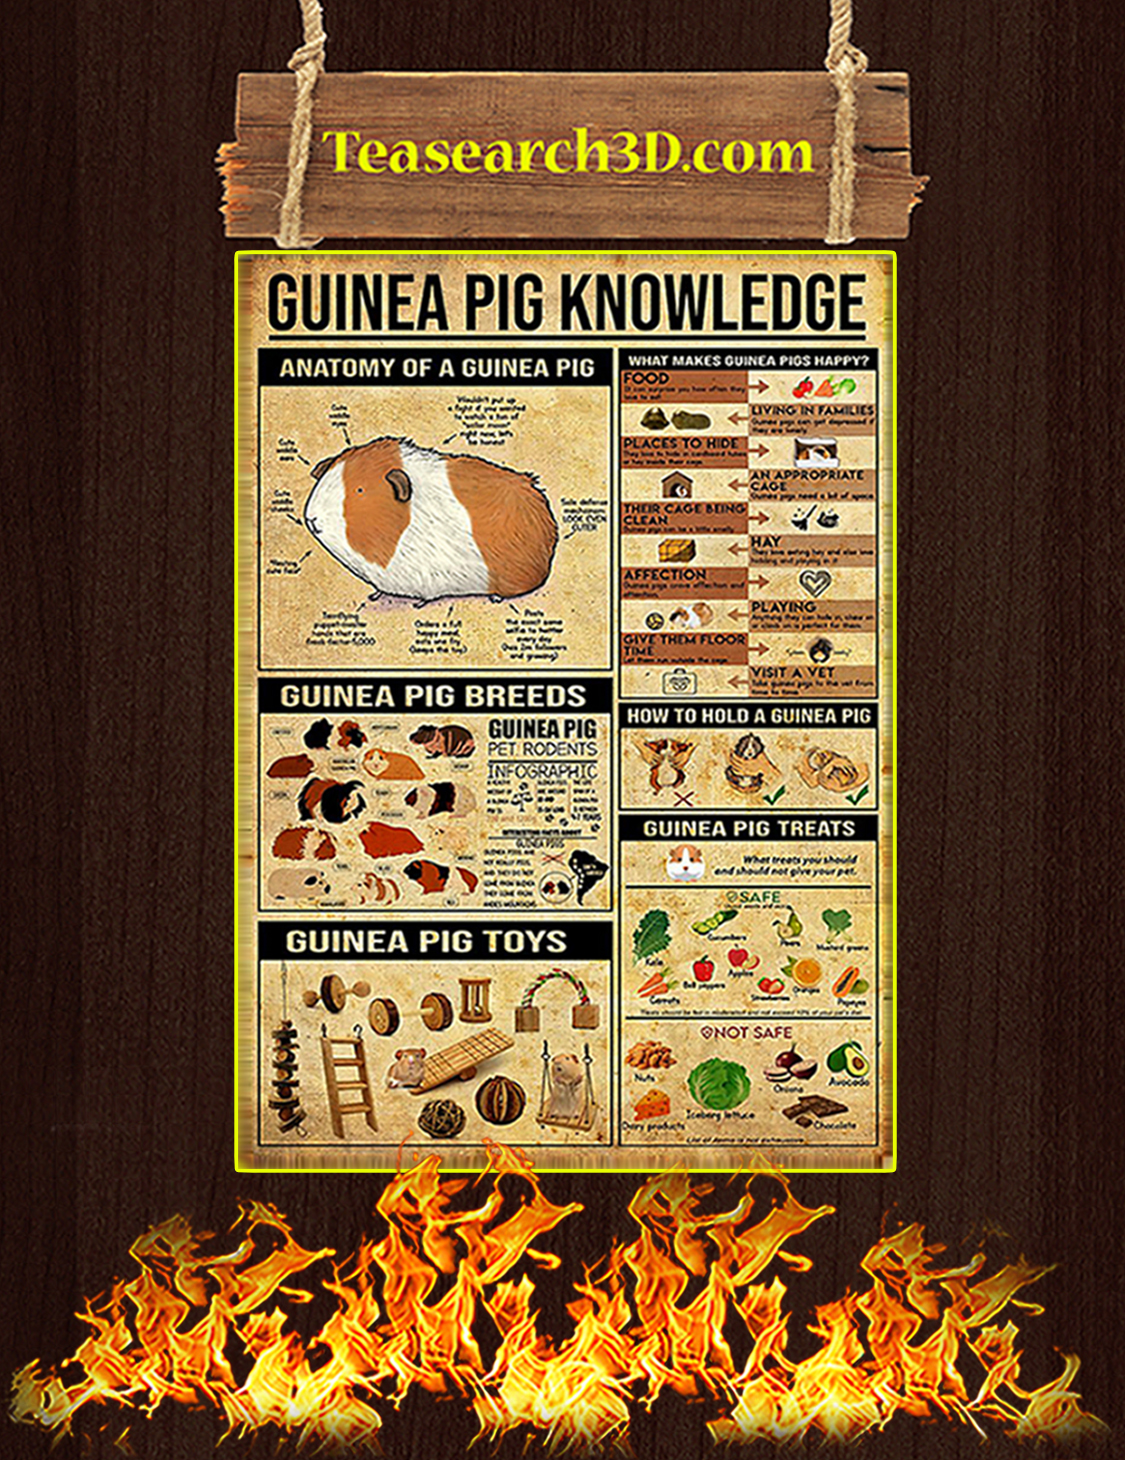 Guinea pig knowledge poster A3